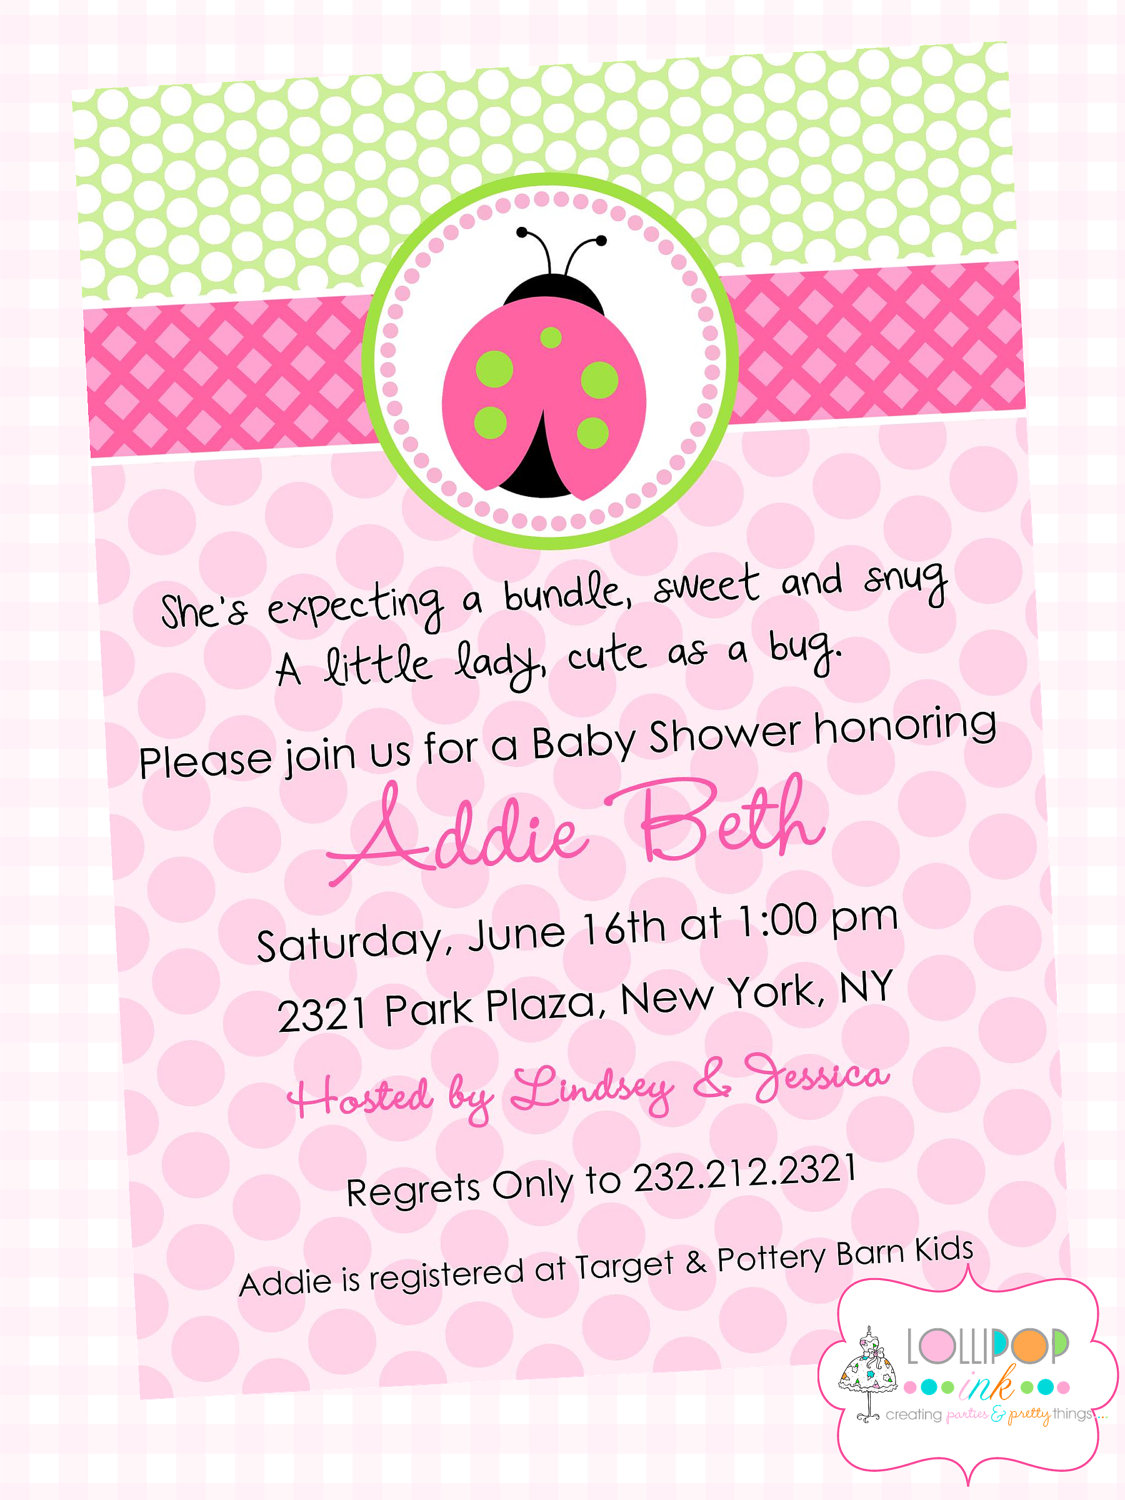 Full Size of Baby Shower:delightful Baby Shower Invitation Wording Picture Designs Baby Shower Invitation Wording Baby Shower Invitations Wording To Make Adorable Baby Shower Invitation Design Online 41020165